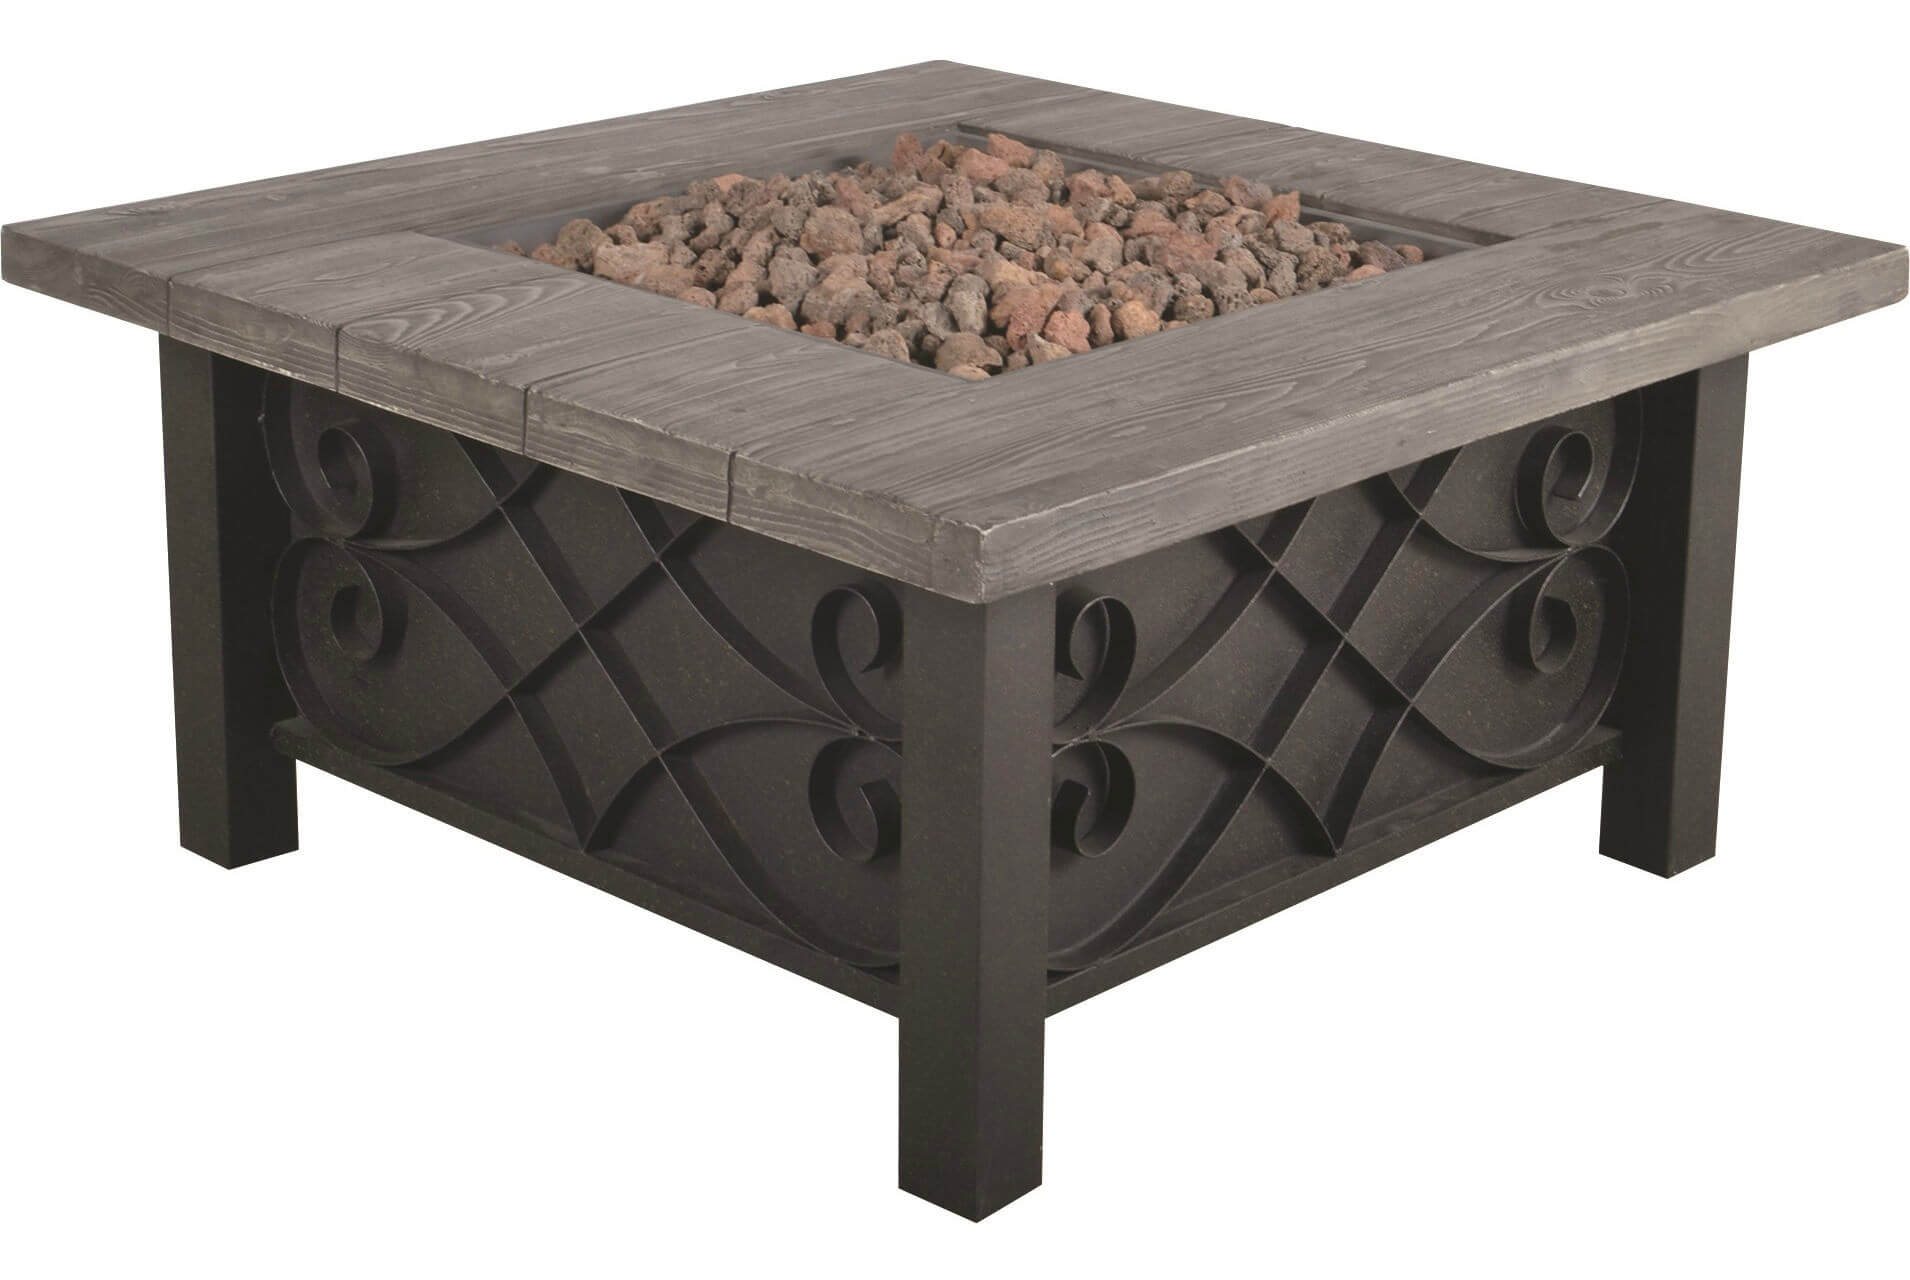 Top Types Of Propane Patio Fire Pits With Table Buying Guide - Outdoor gas fire pit table top